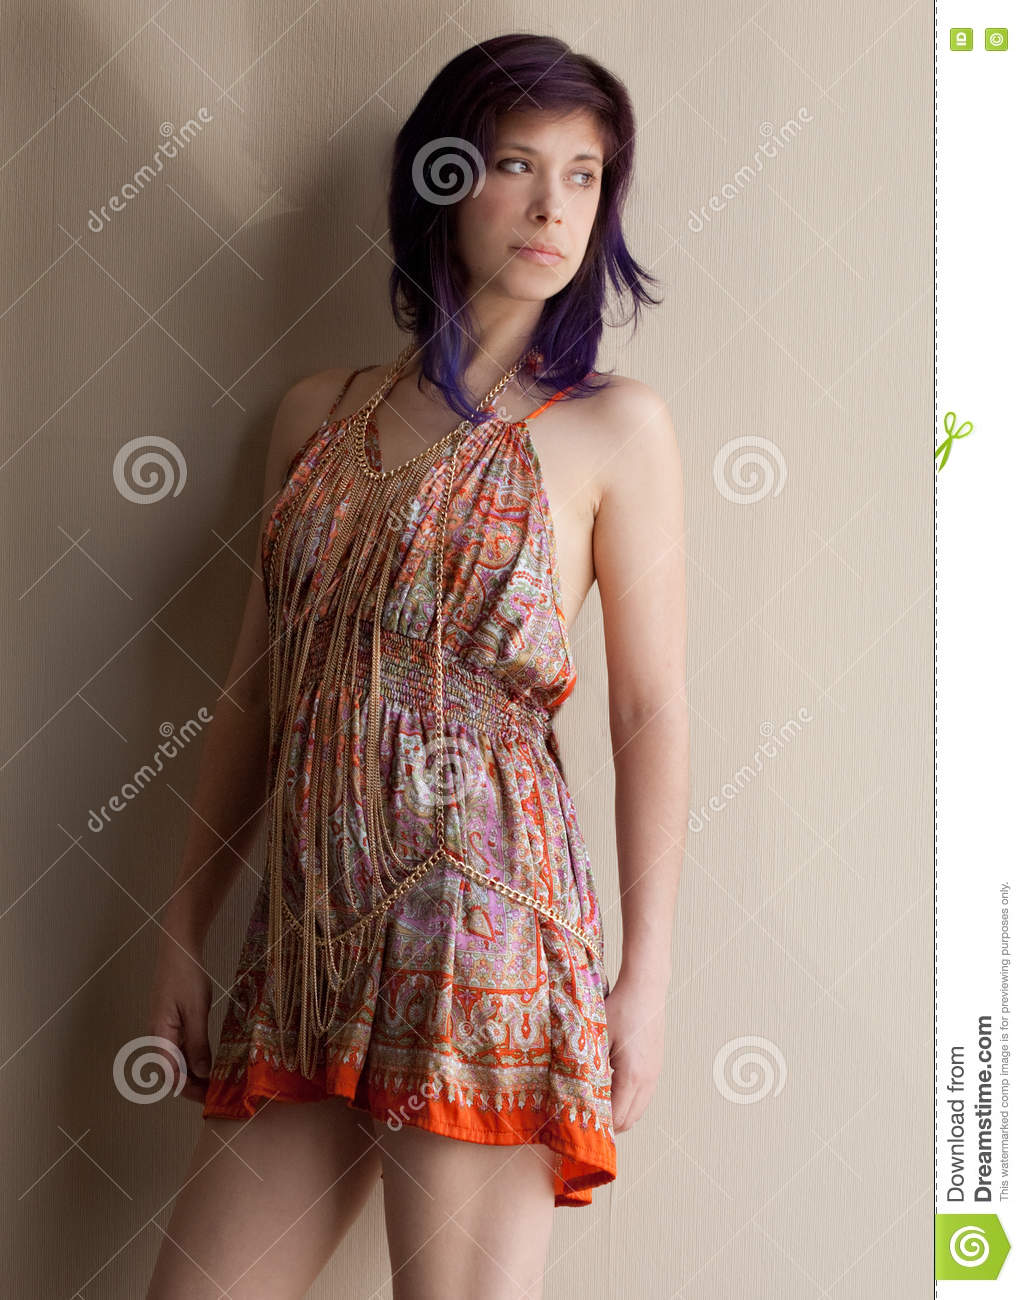 Woman in Dress and Cross Body Gold Chain Jewelry